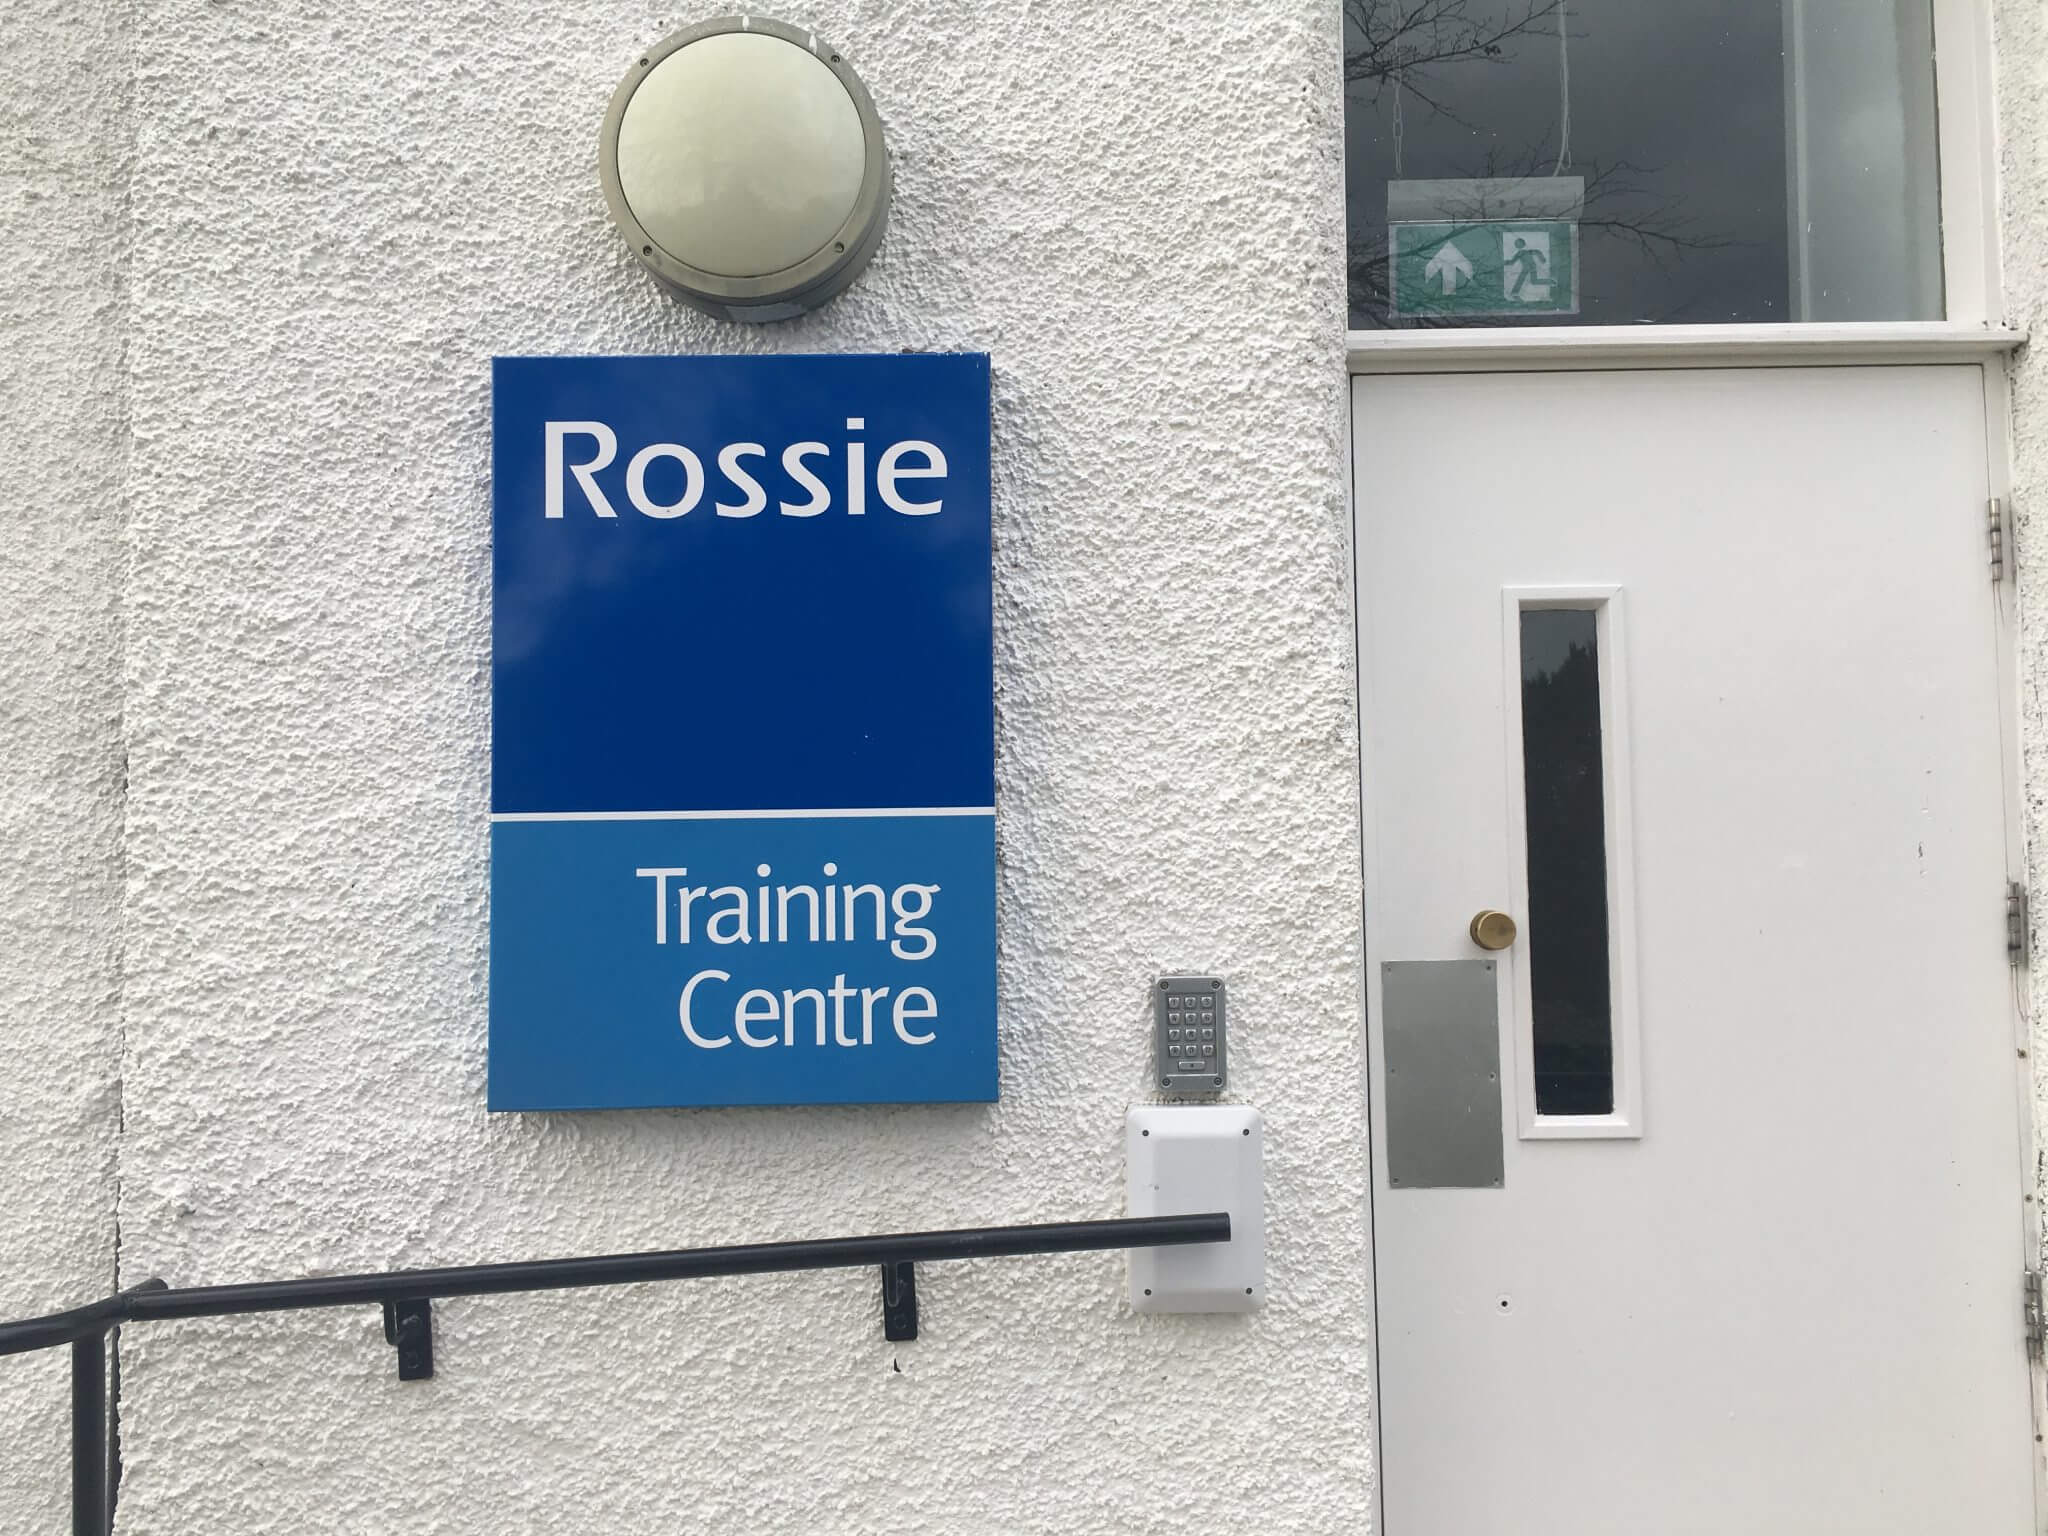 Rossie Training Centre